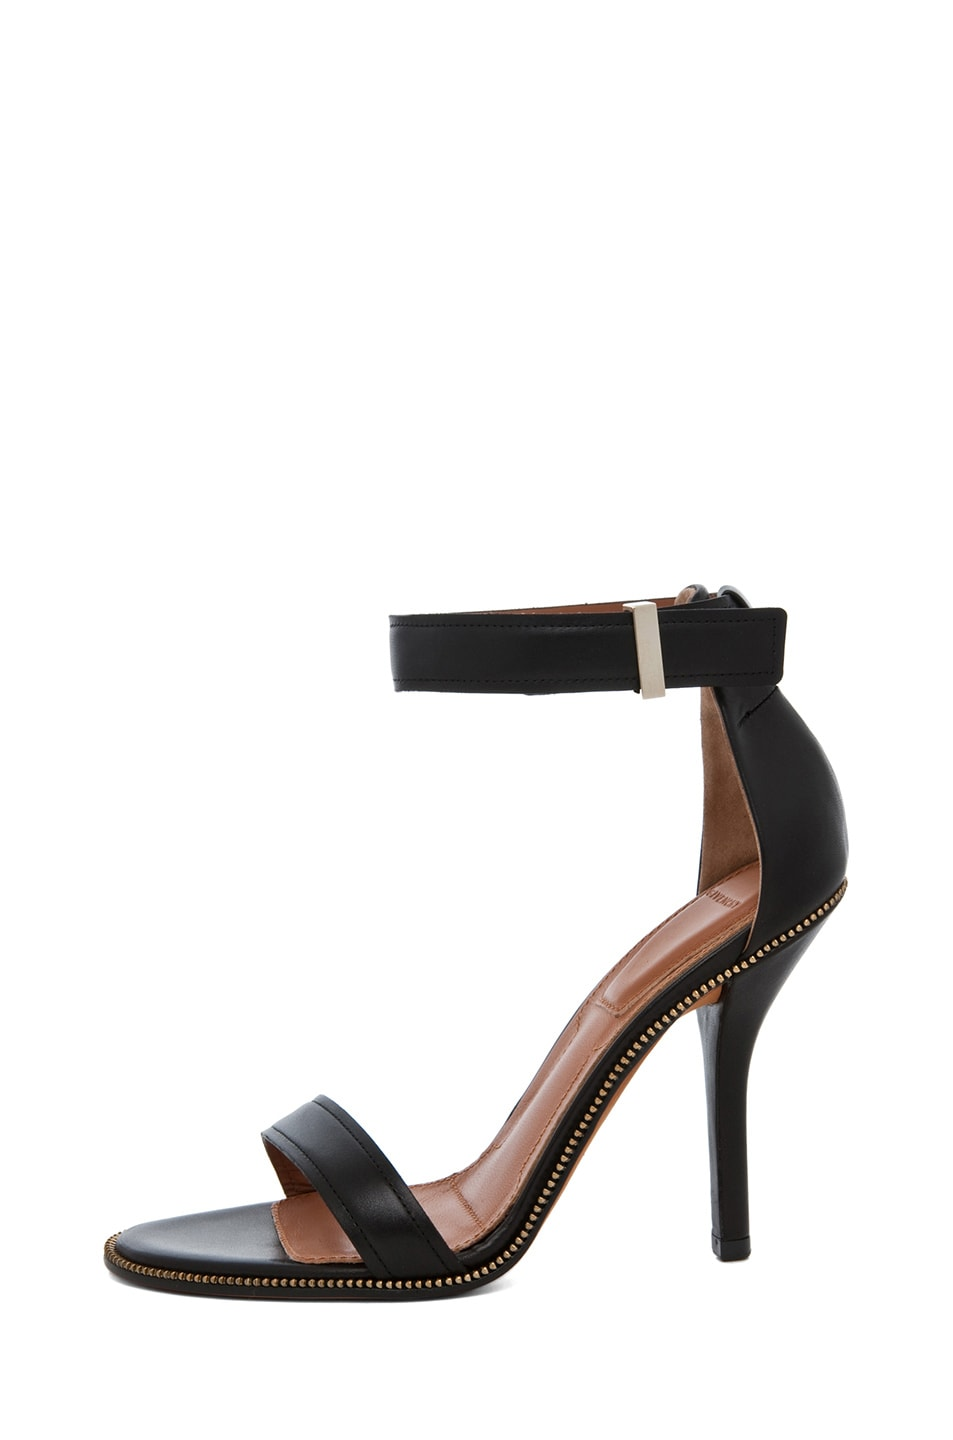 Image 1 of GIVENCHY Giuliana Zip Around Leather Heel in Black